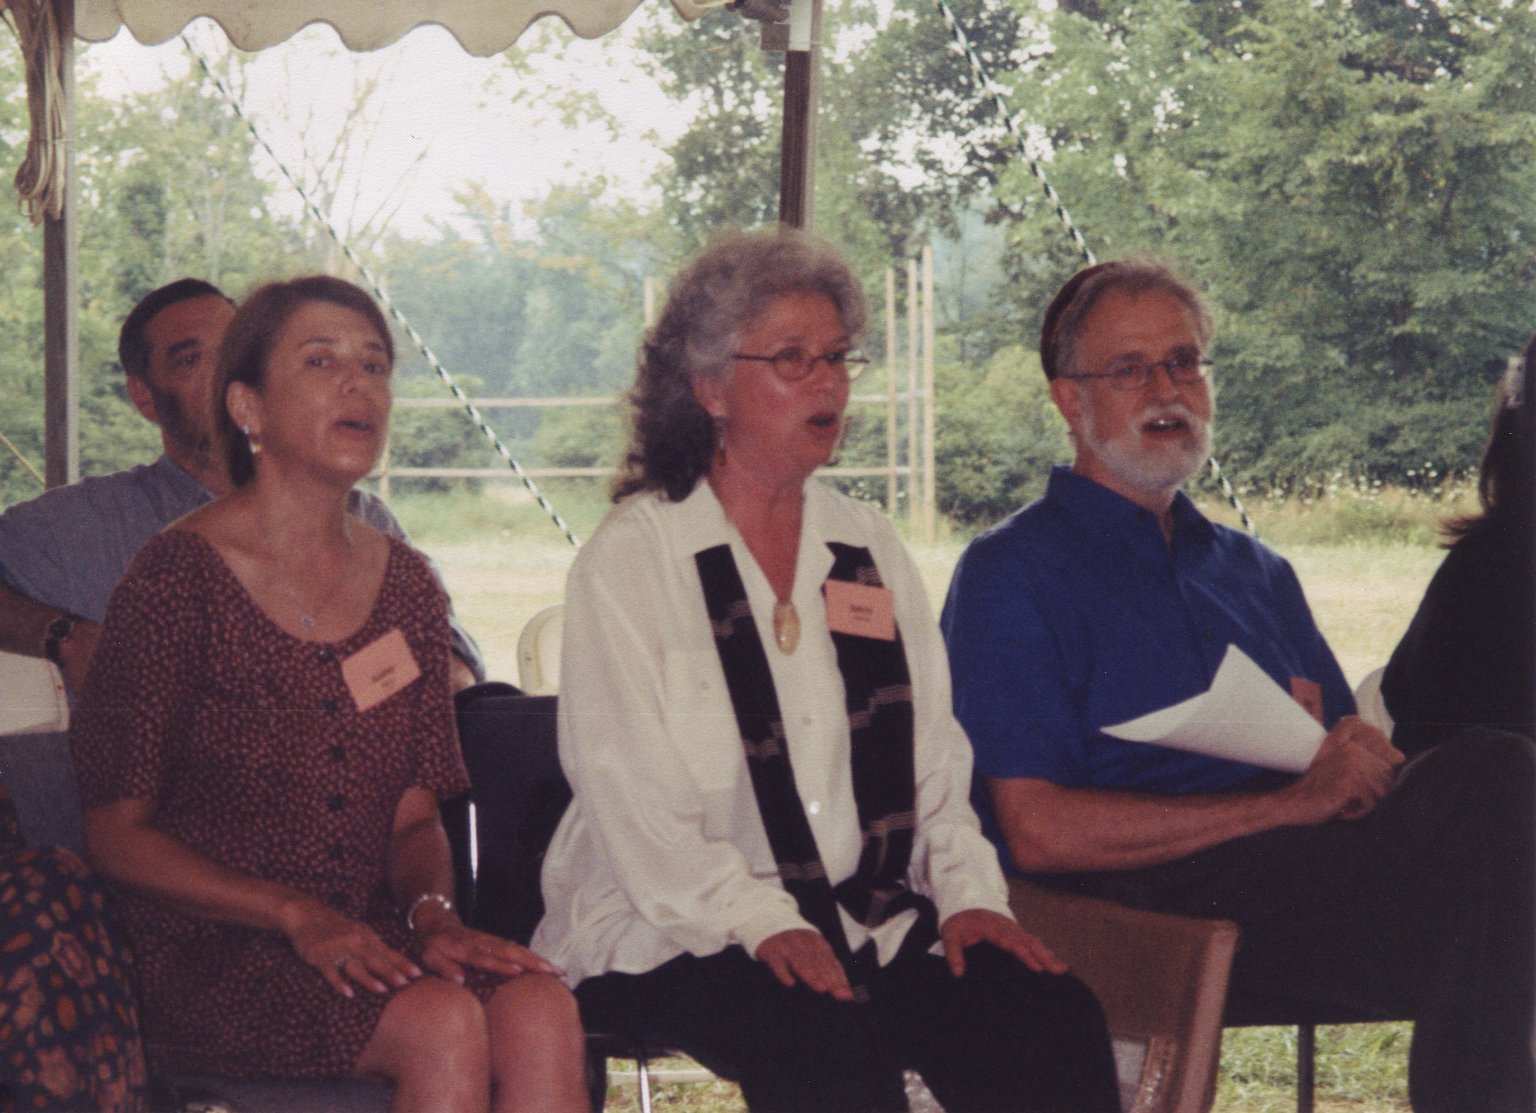 Candid photo from Rabbi Zalman Schachter-Shalomi's 75th birthday celebration at Elat Chayyim, ca. 1999.